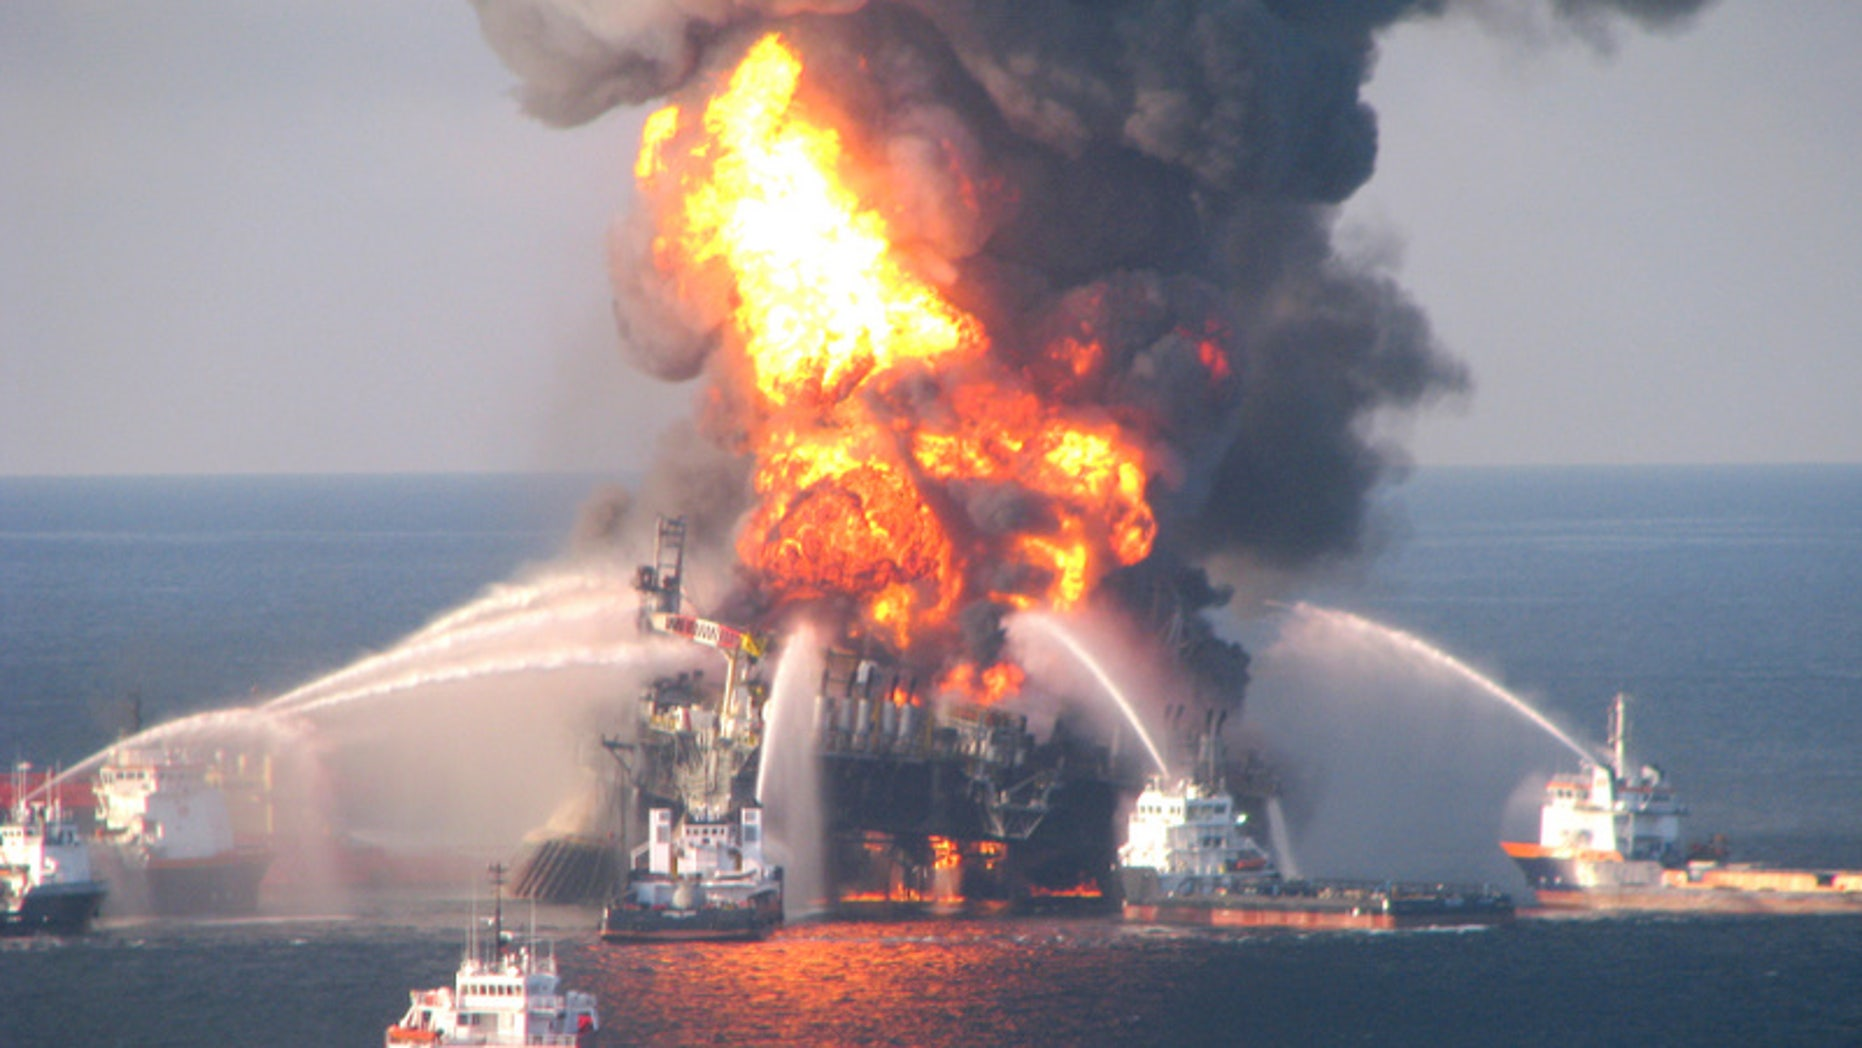 April 21, 2010: Fire boat response crews battle the blazing remnants of the offshore oil rig Deepwater Horizon, off Louisiana.